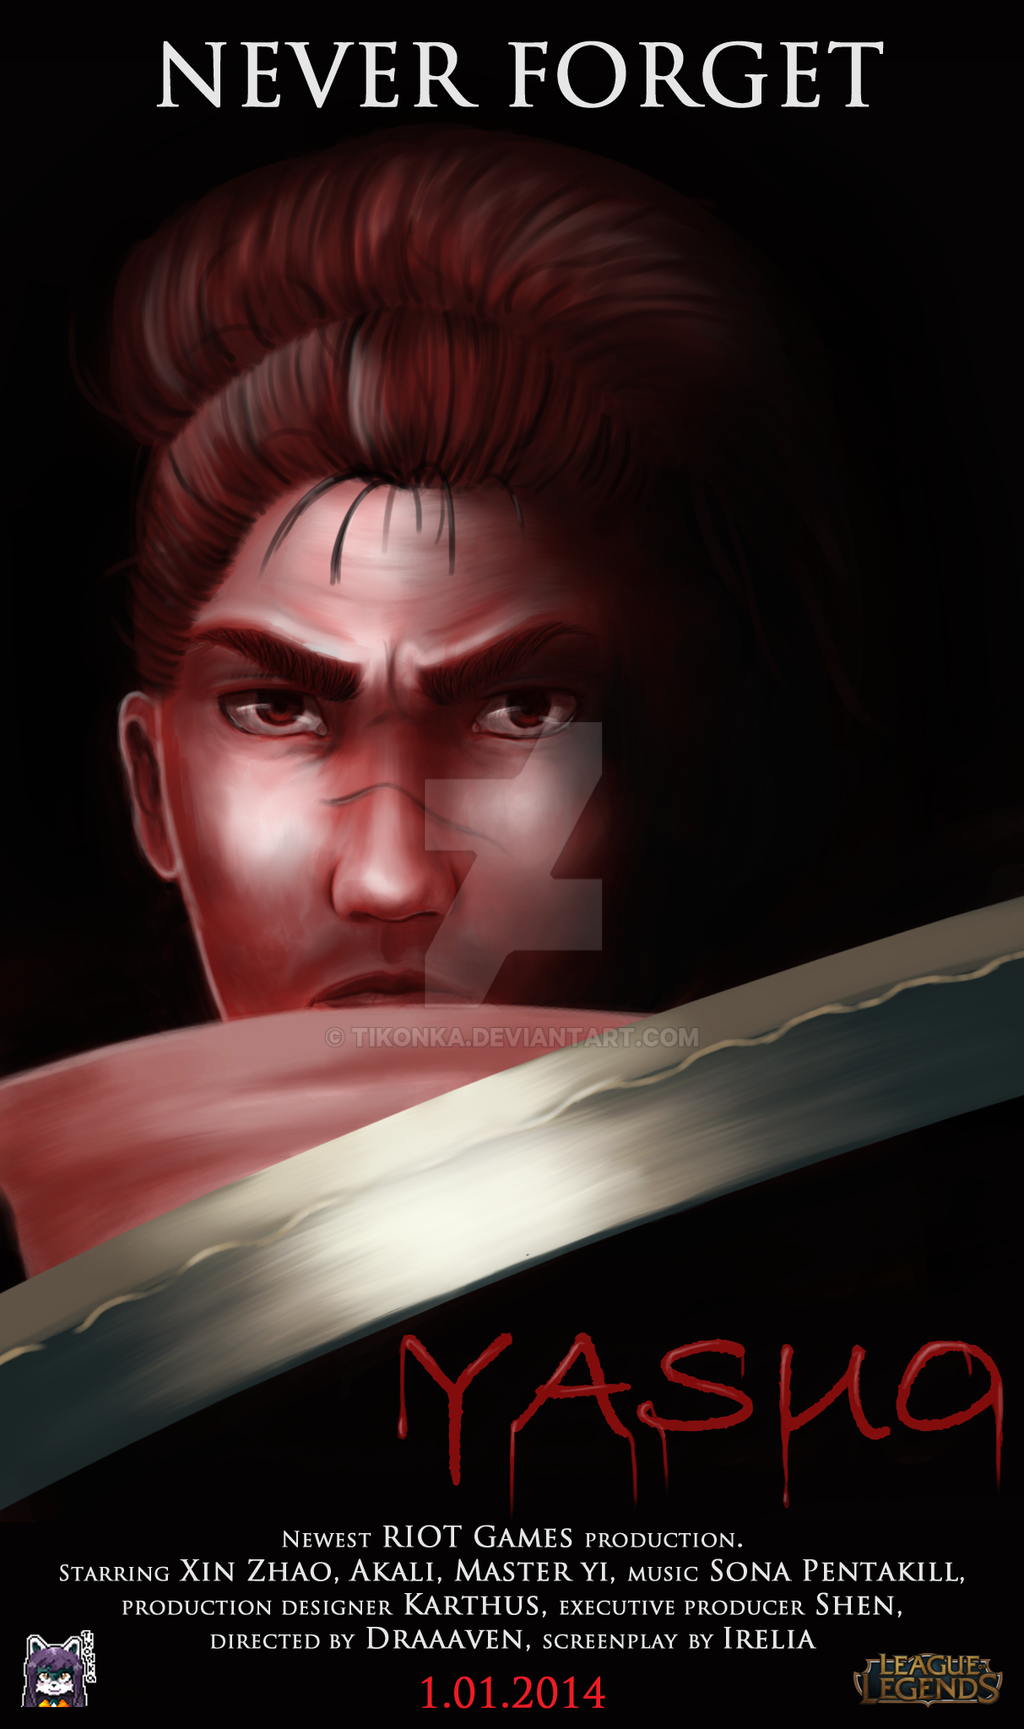 Yasuo Fan Art Contest Yasuo, movie poster co...